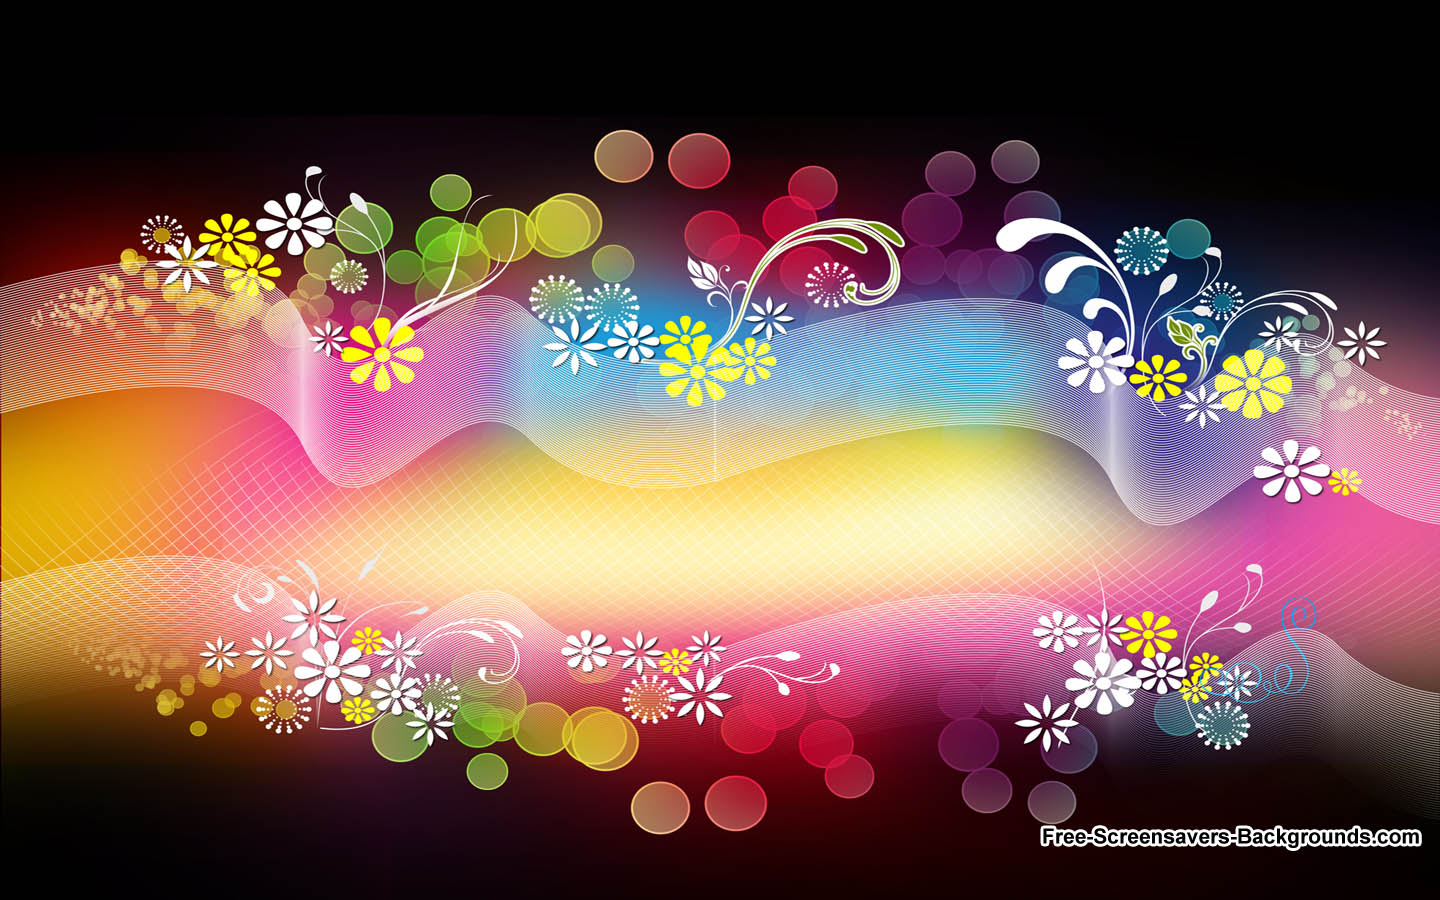 49] Wallpapers and Screensavers for Laptops on WallpaperSafari 1440x900